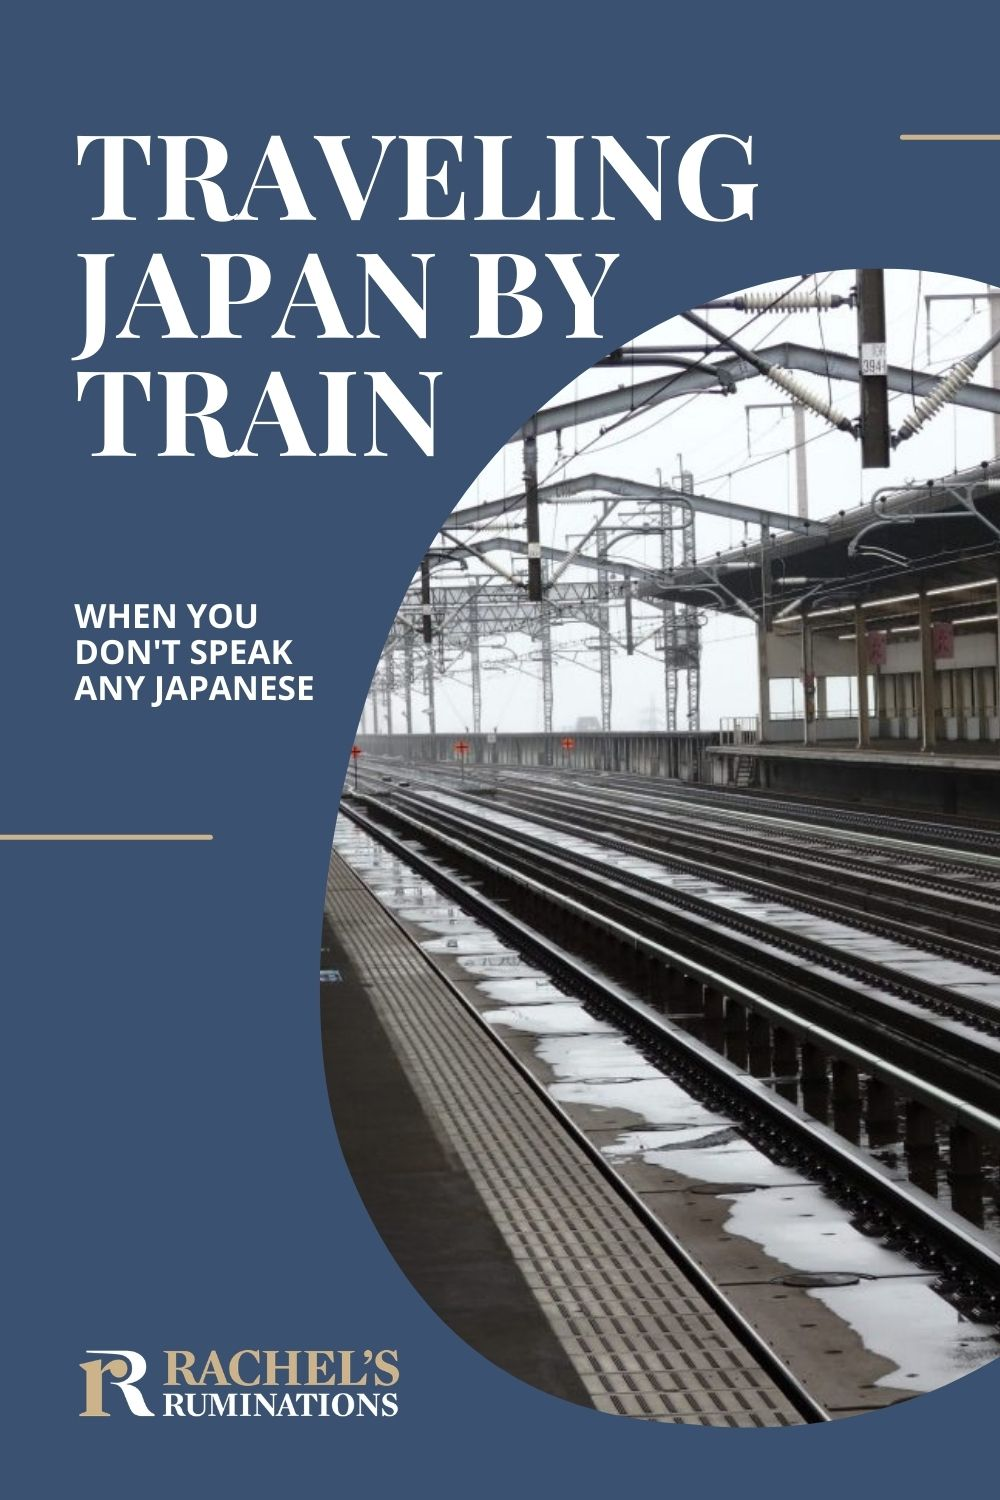 If you don't speak Japanese, traveling by train in Japan can be daunting. Here are 8 tips that will help you negotiate the Japan Rail system. via @rachelsruminations